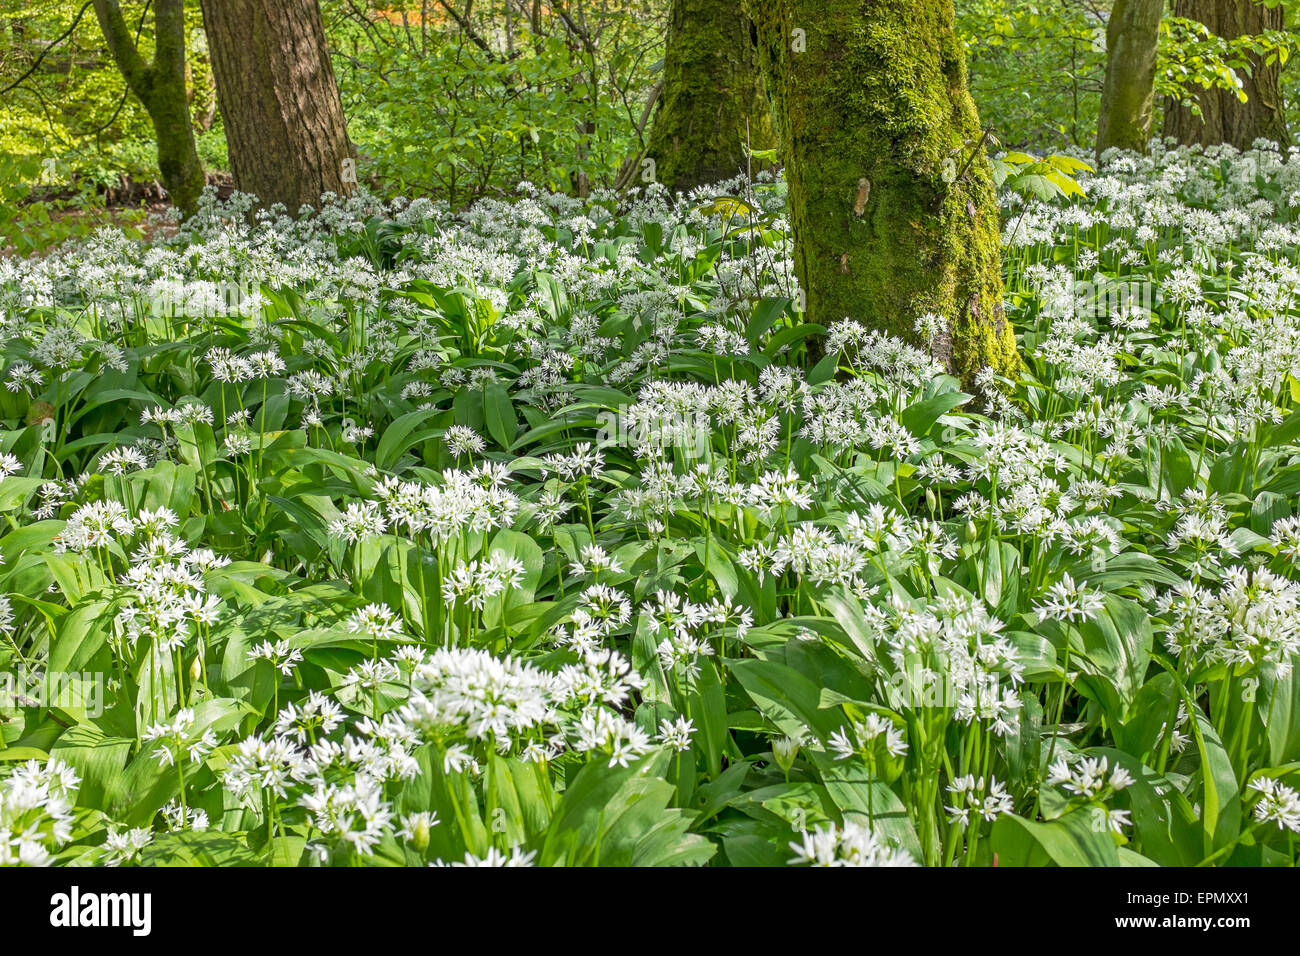 Wild Garlic plants growing in woodlands, Ayrshire, Scotland, UK. Plant is also known as ransoms, buckrams, wood - Stock Image